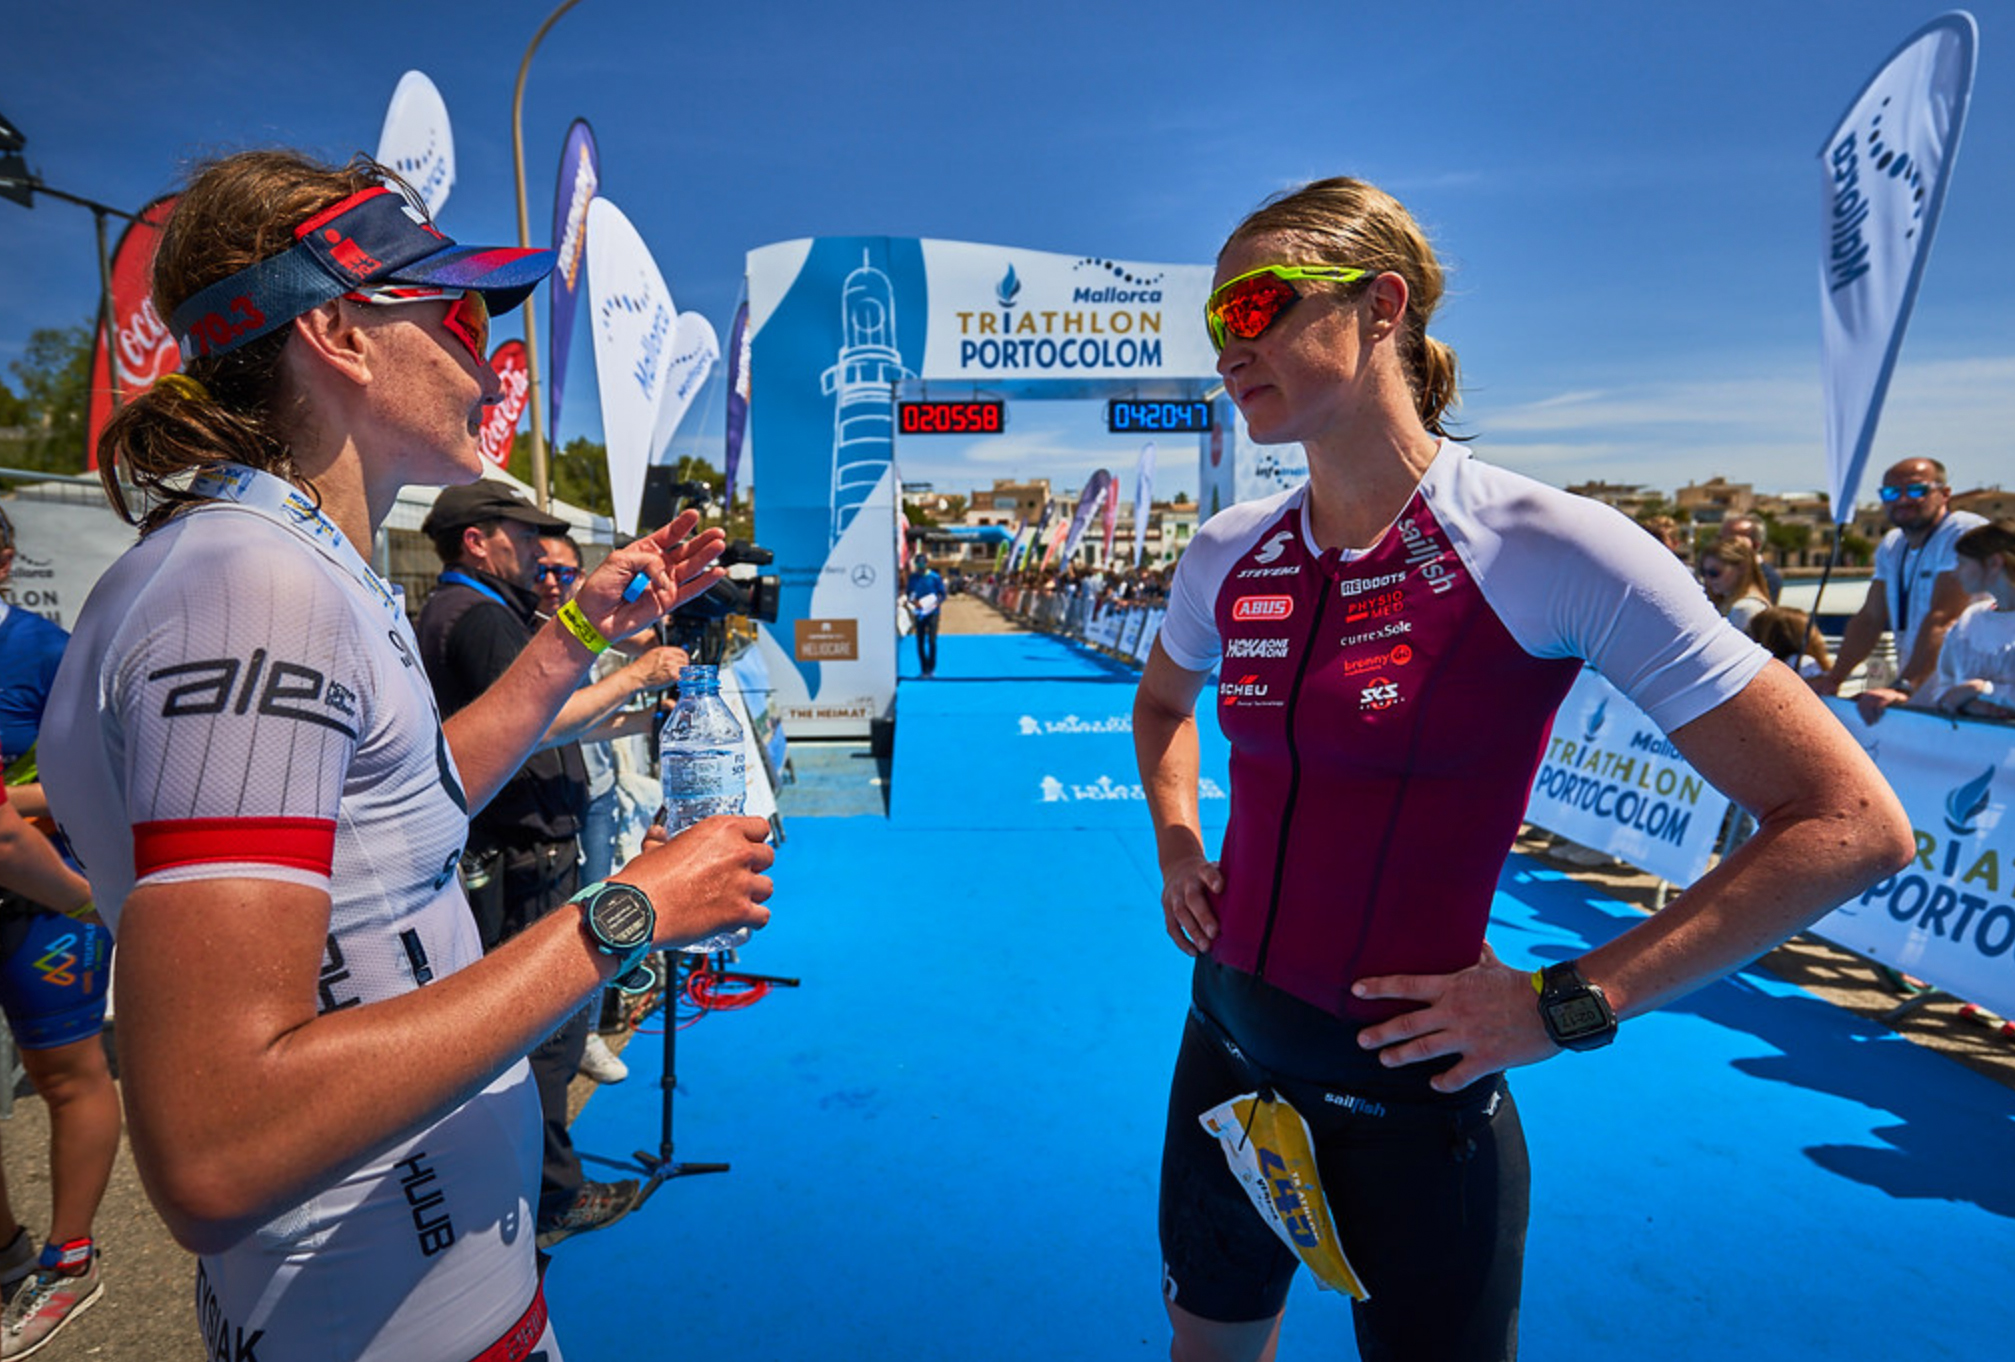 Portocolom International Triathlon (Bildrechte: Kumulusactiveworld)